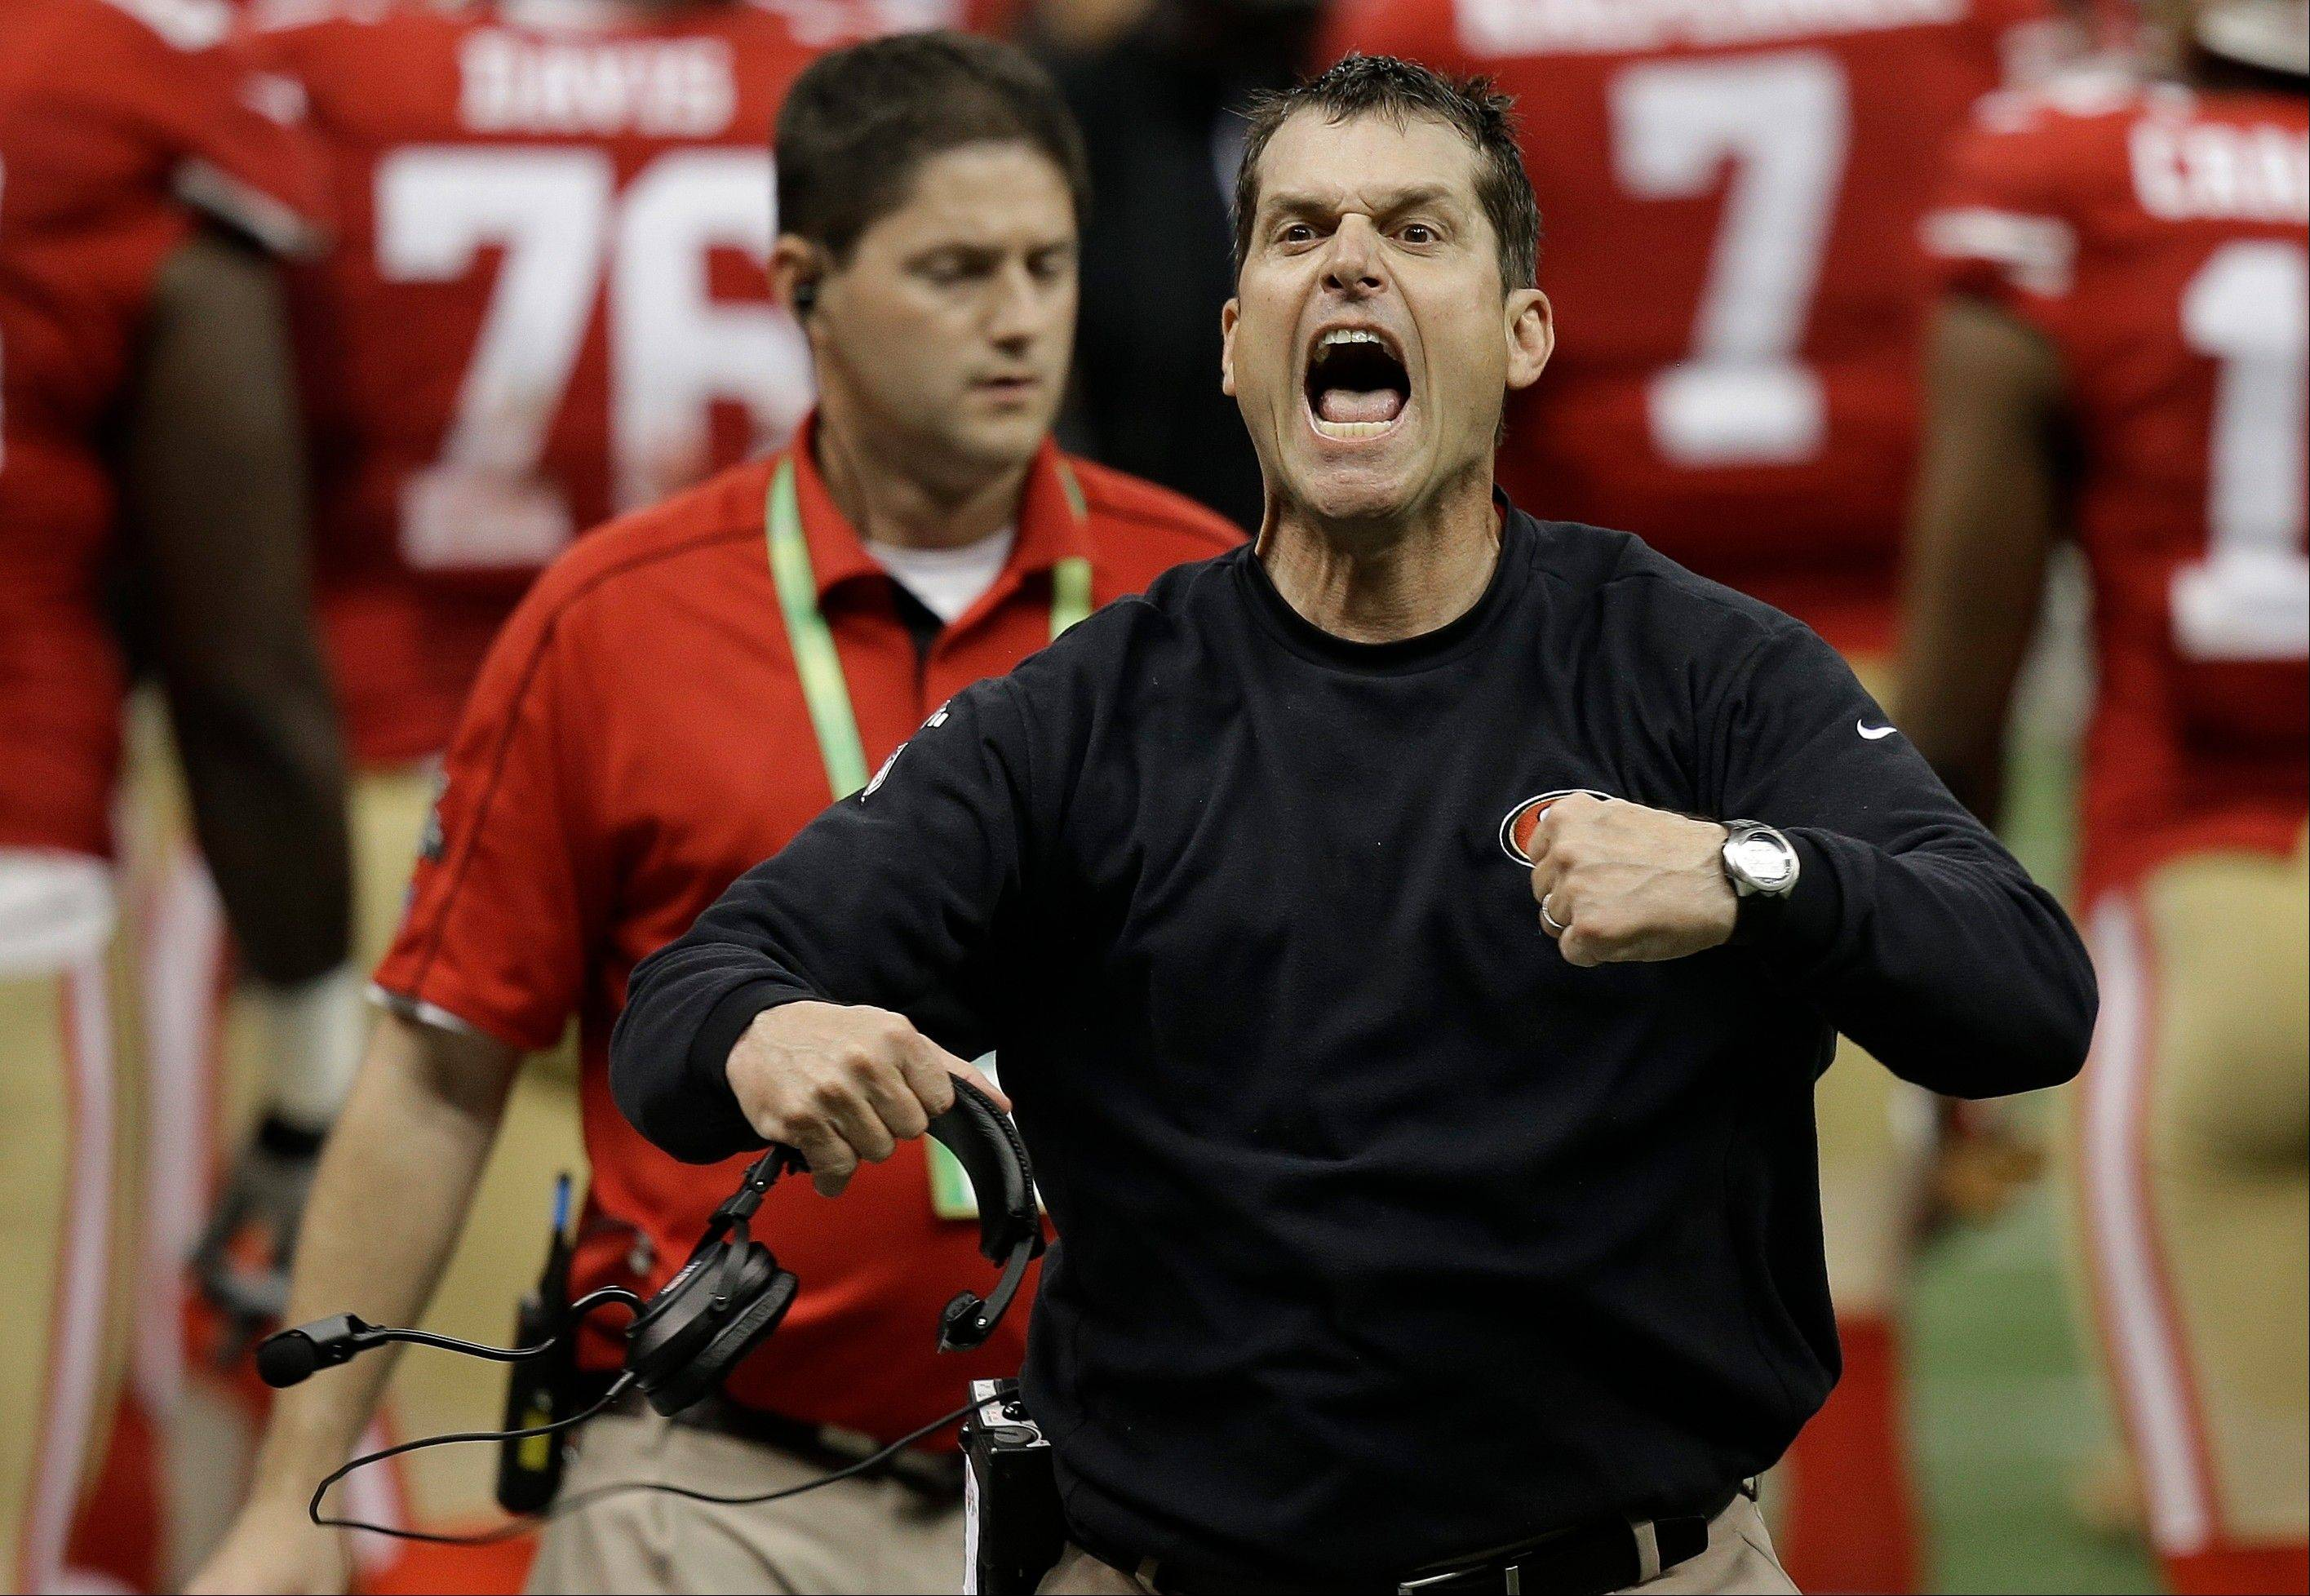 San Francisco 49ers head coach Jim Harbaugh protests a non-call by the officials after a fourth down play against the Baltimore Ravens during the second half.